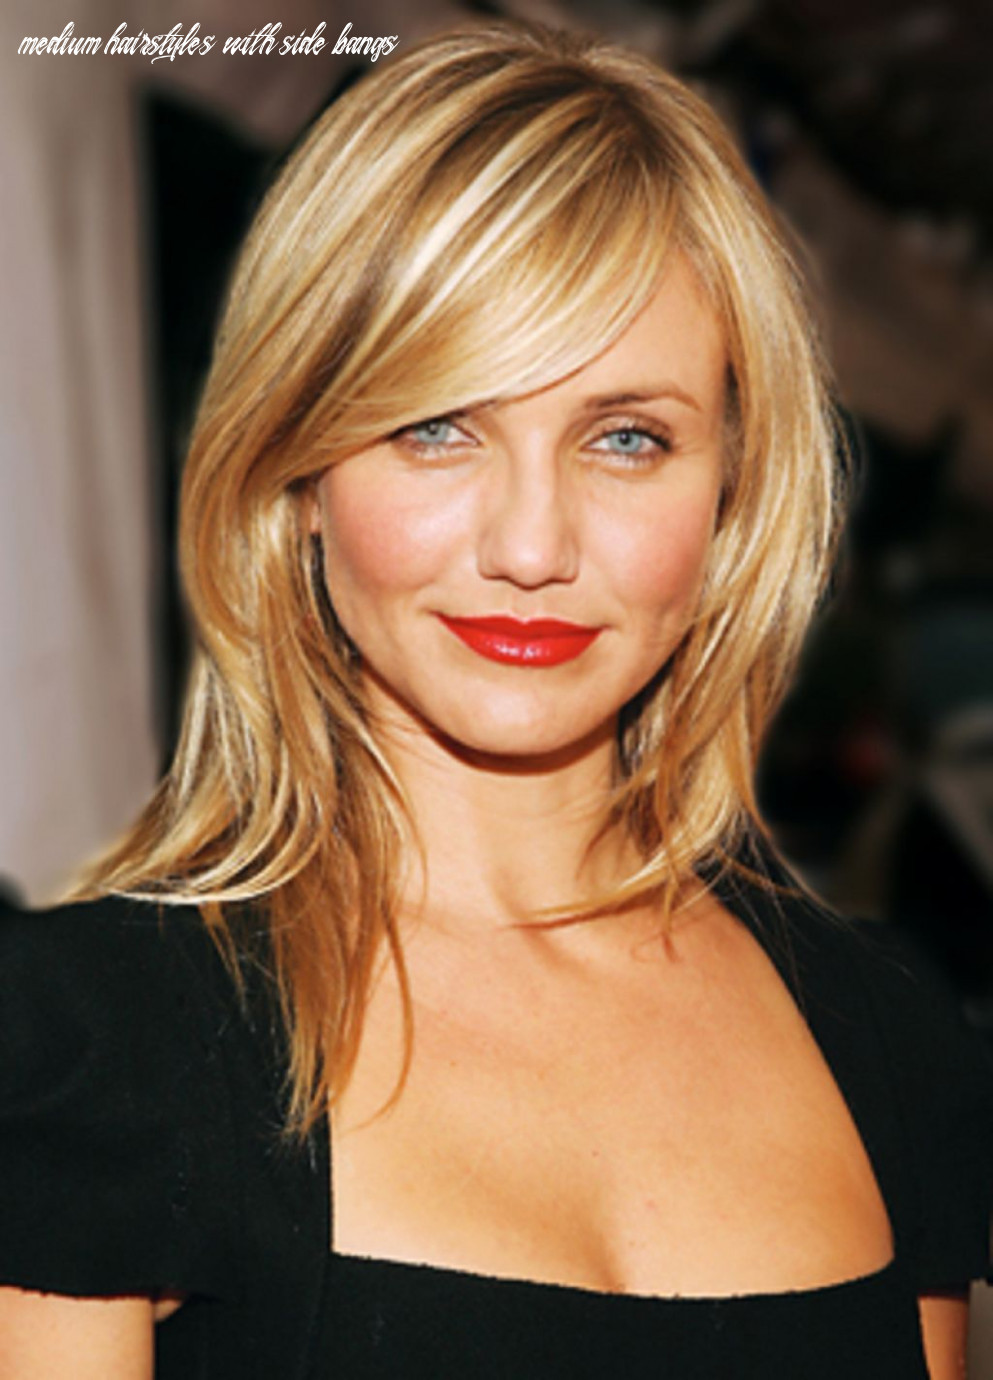 Cameron diaz haircut simple nice look impression , this style is